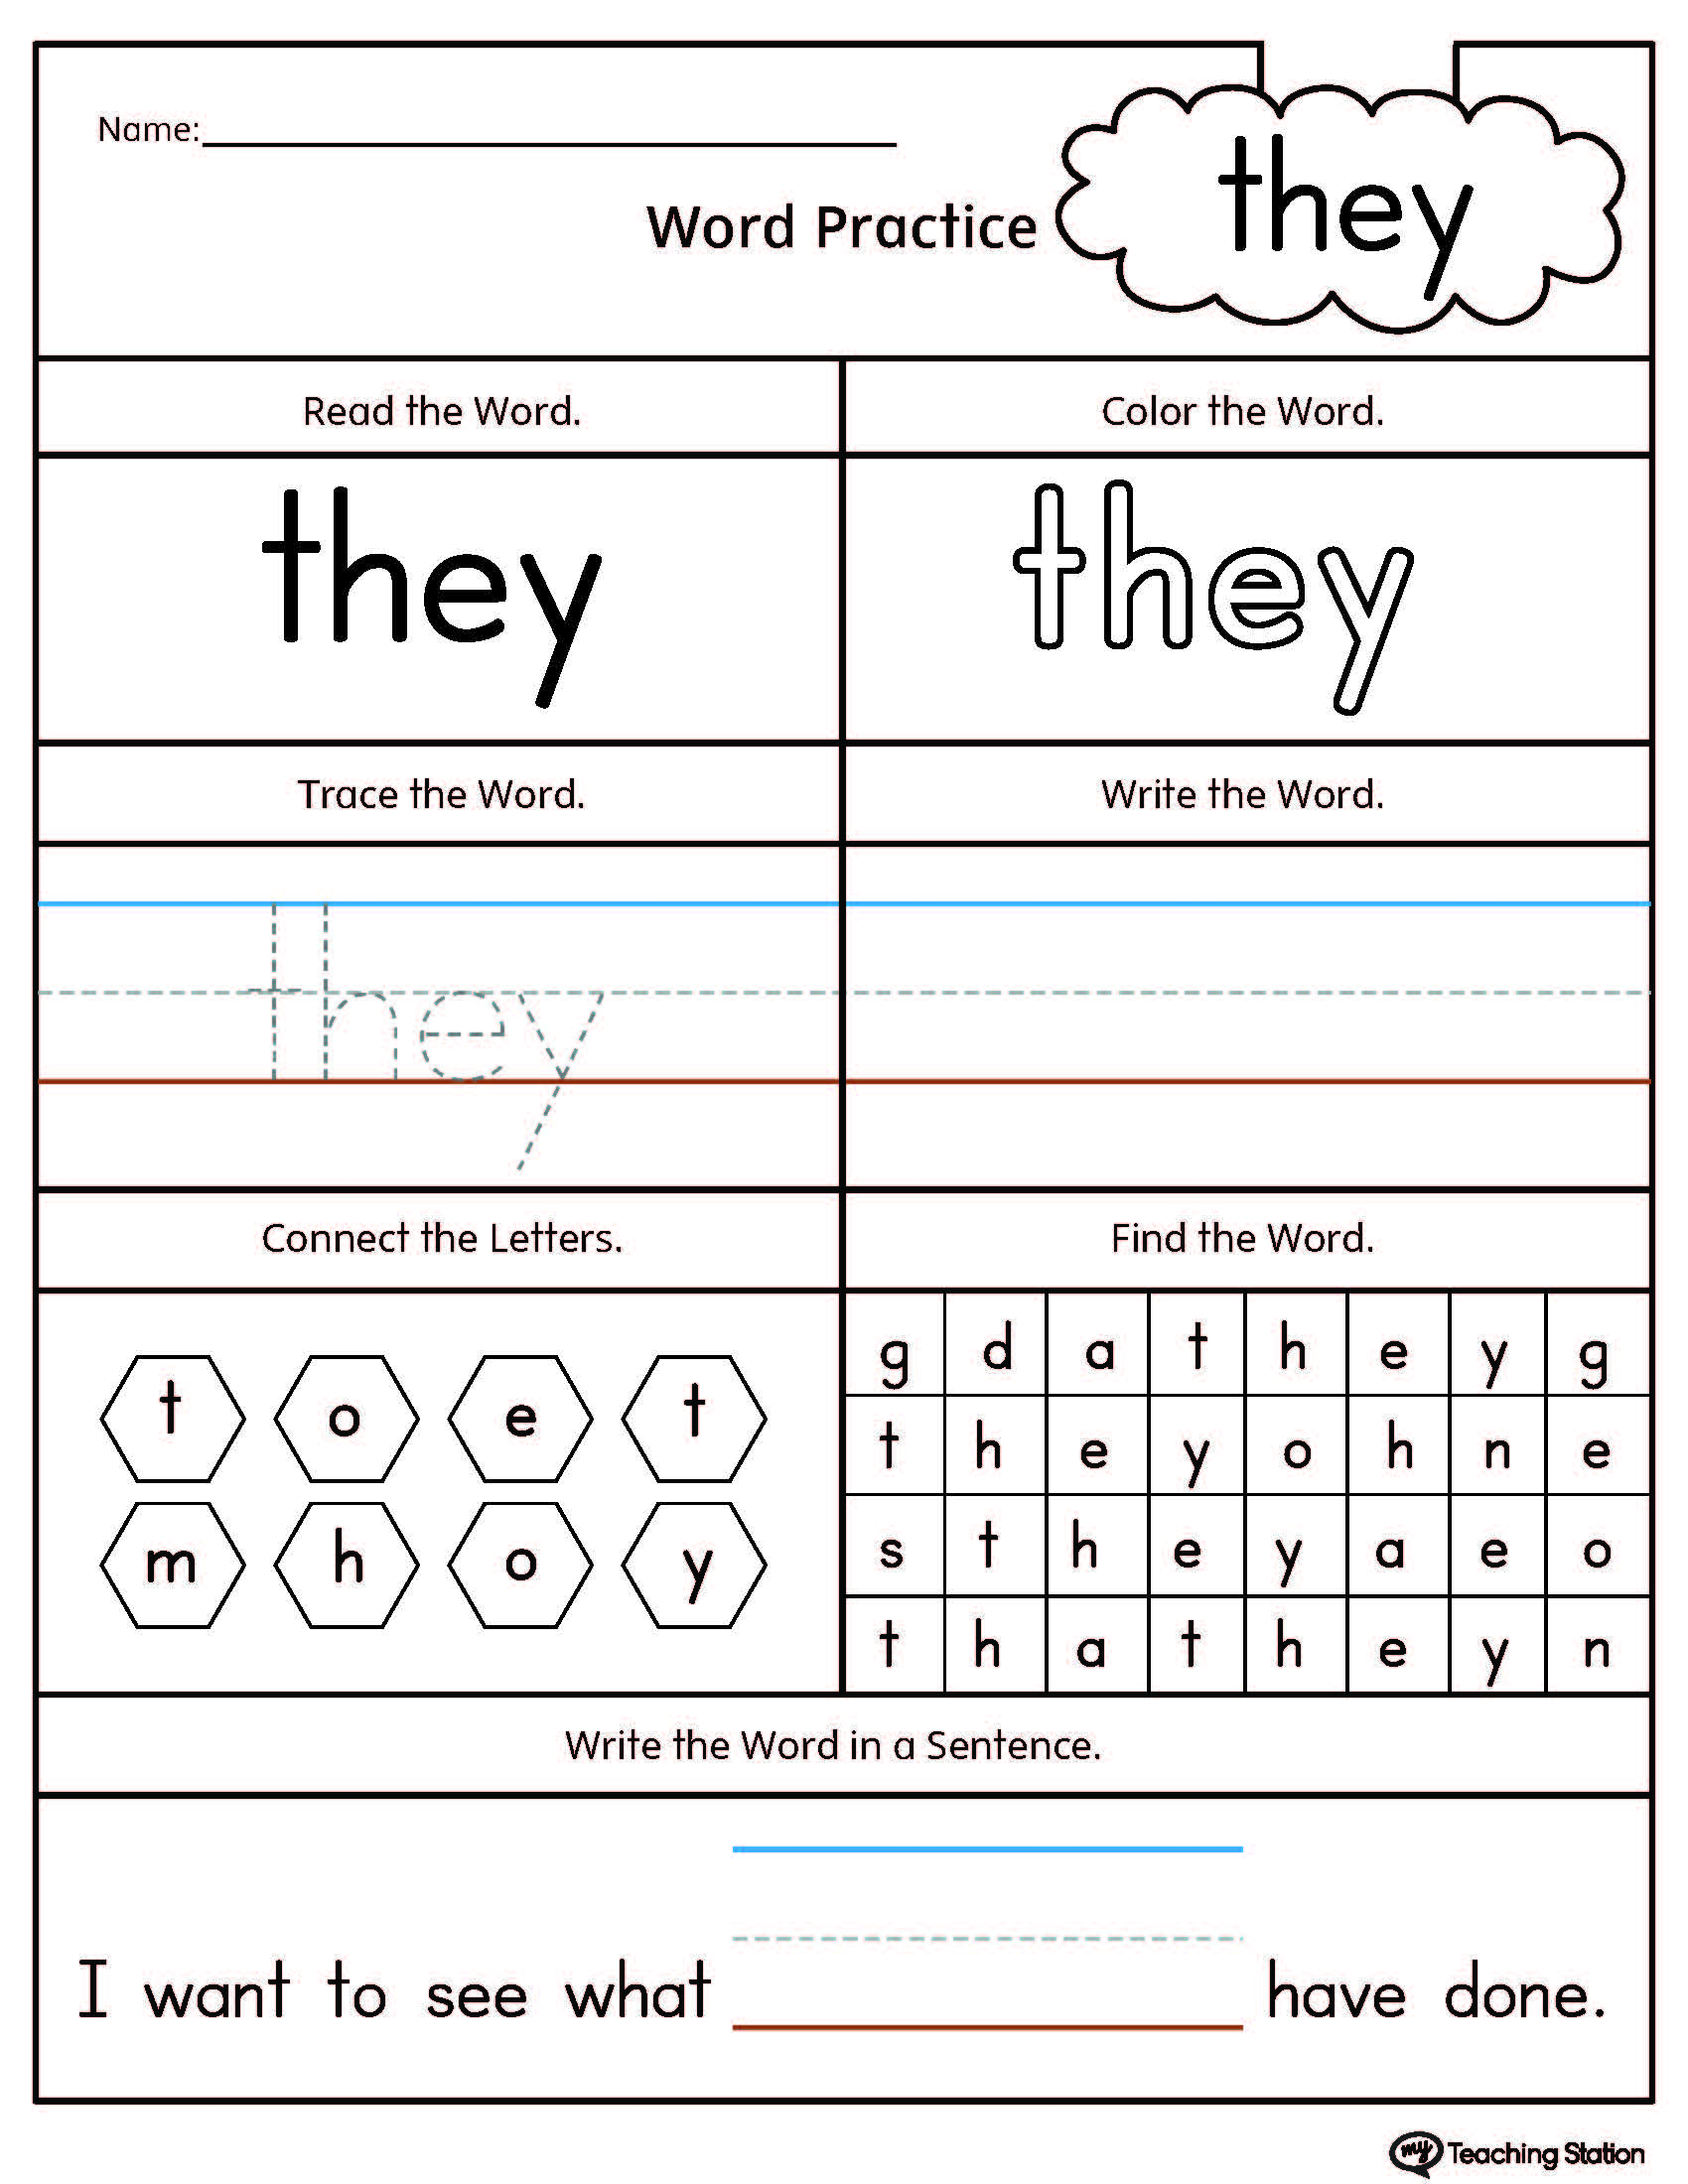 worksheet High Frequency Words Worksheets high frequency words printable worksheets myteachingstation com word they worksheet